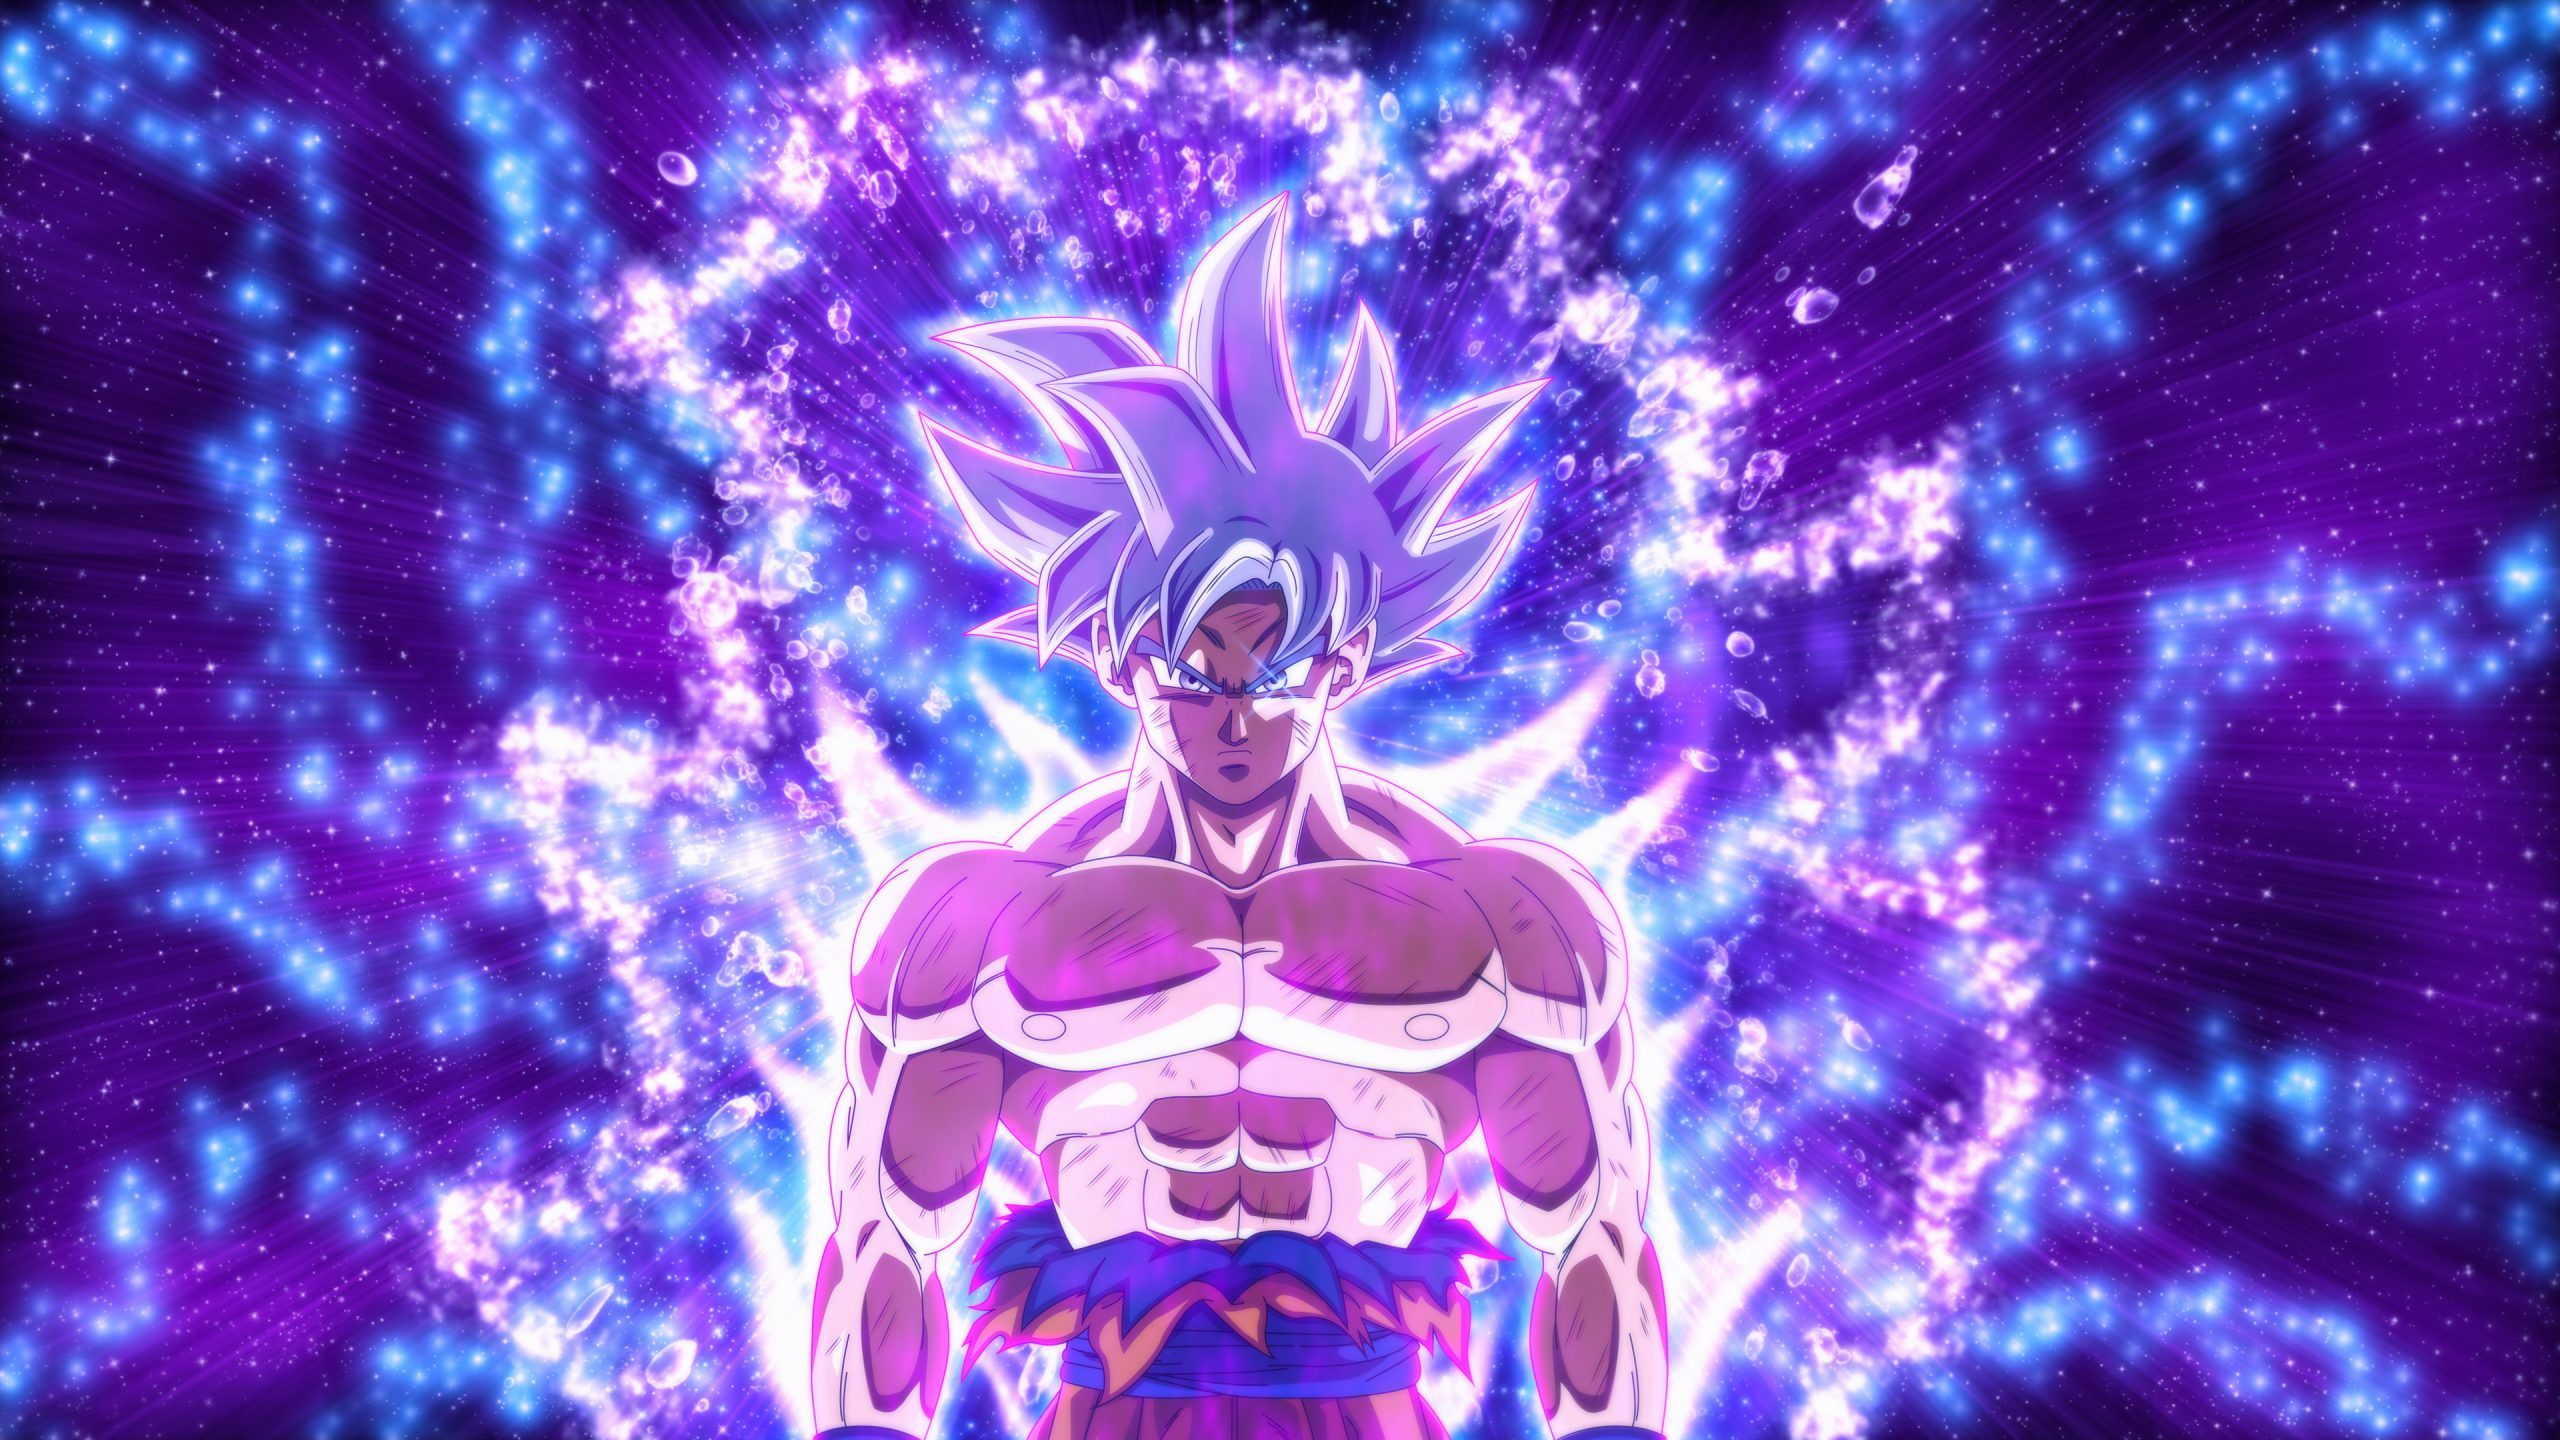 Dragon Ball Super Goku Ultra Instinct 4k Wallpaper Download High Resolution 4k Wallpaper